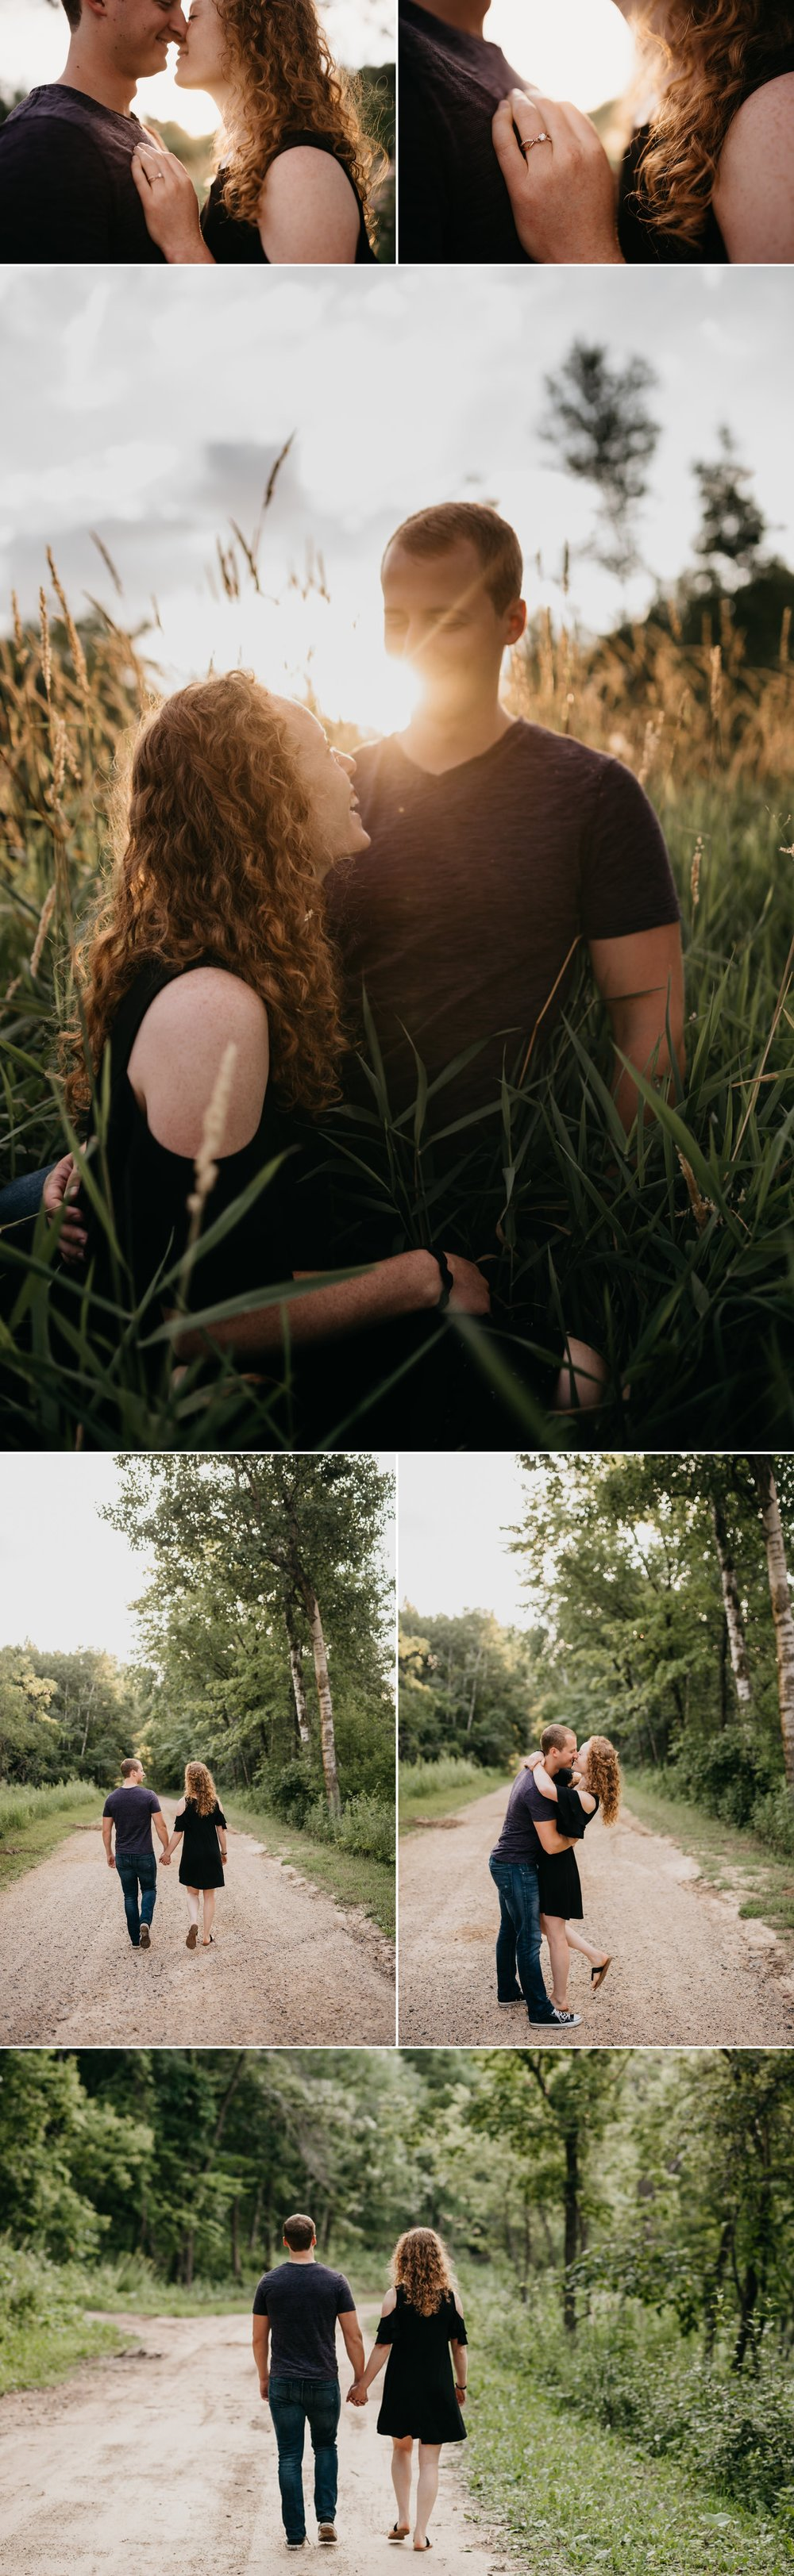 MN Outdoors Engagement Session 6.jpg